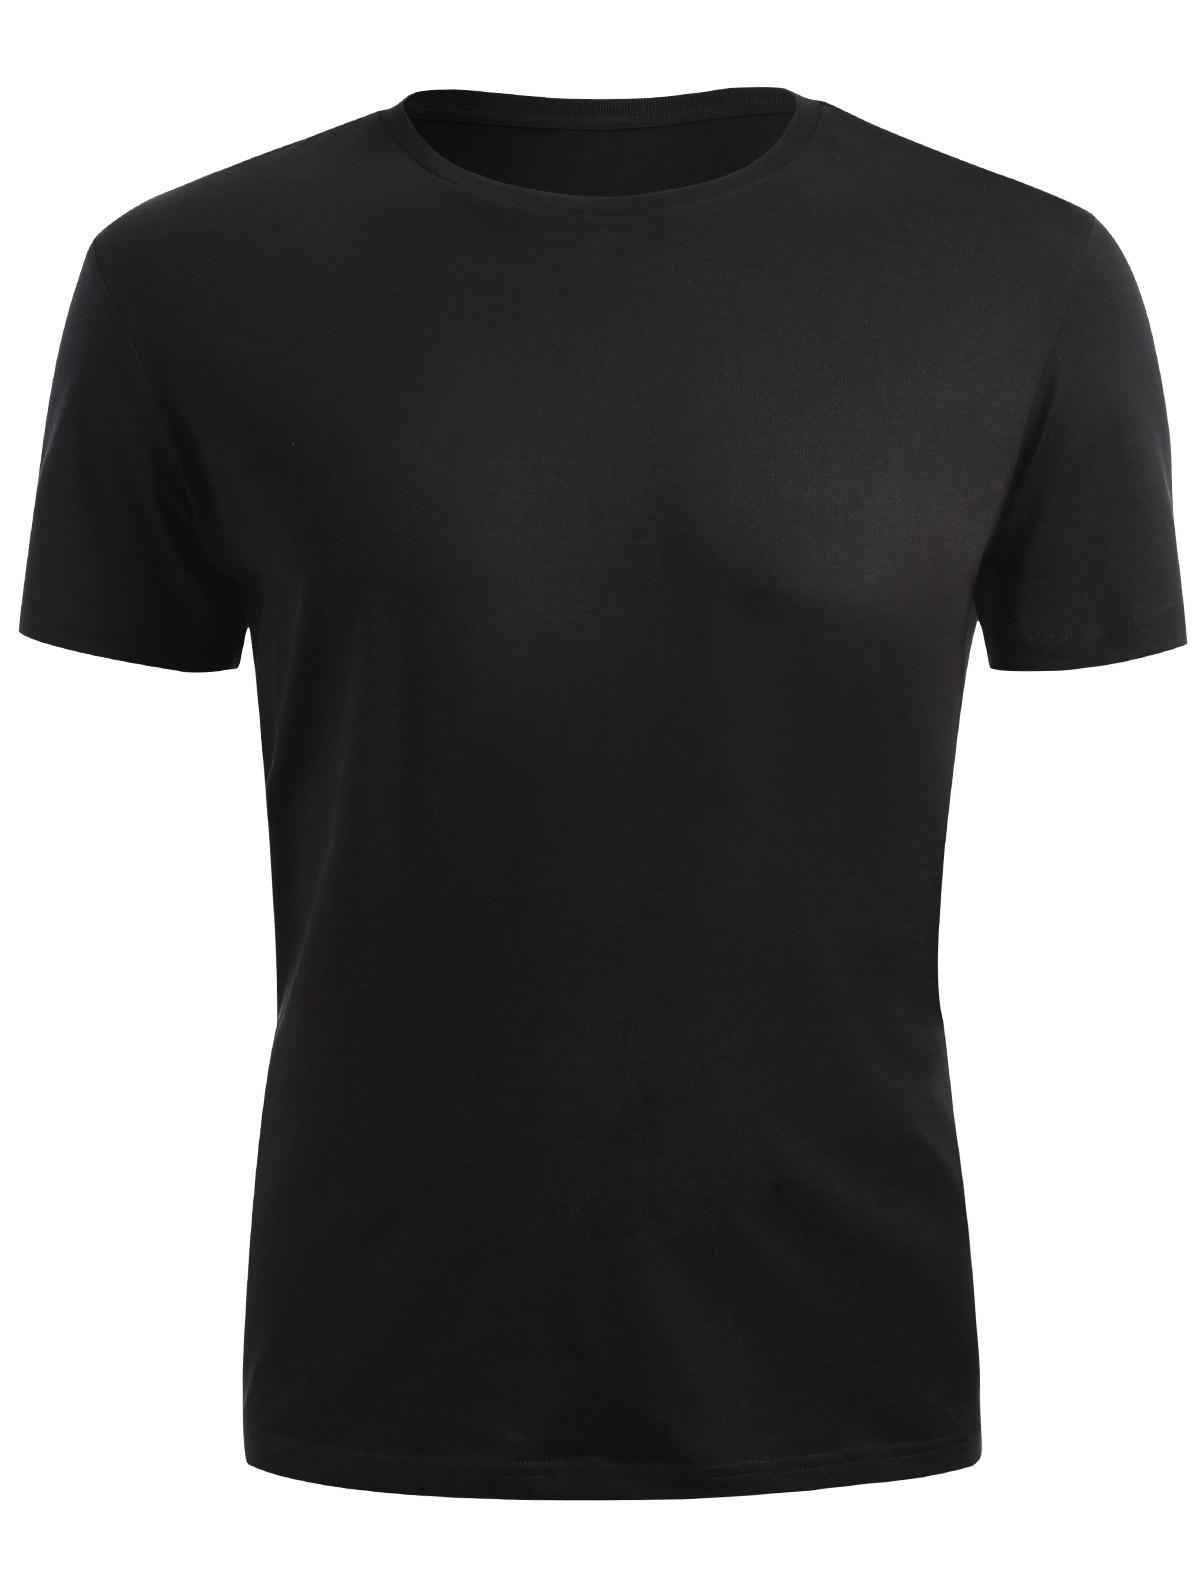 Ribbed Neck Short Sleeve T-shirt - BLACK L